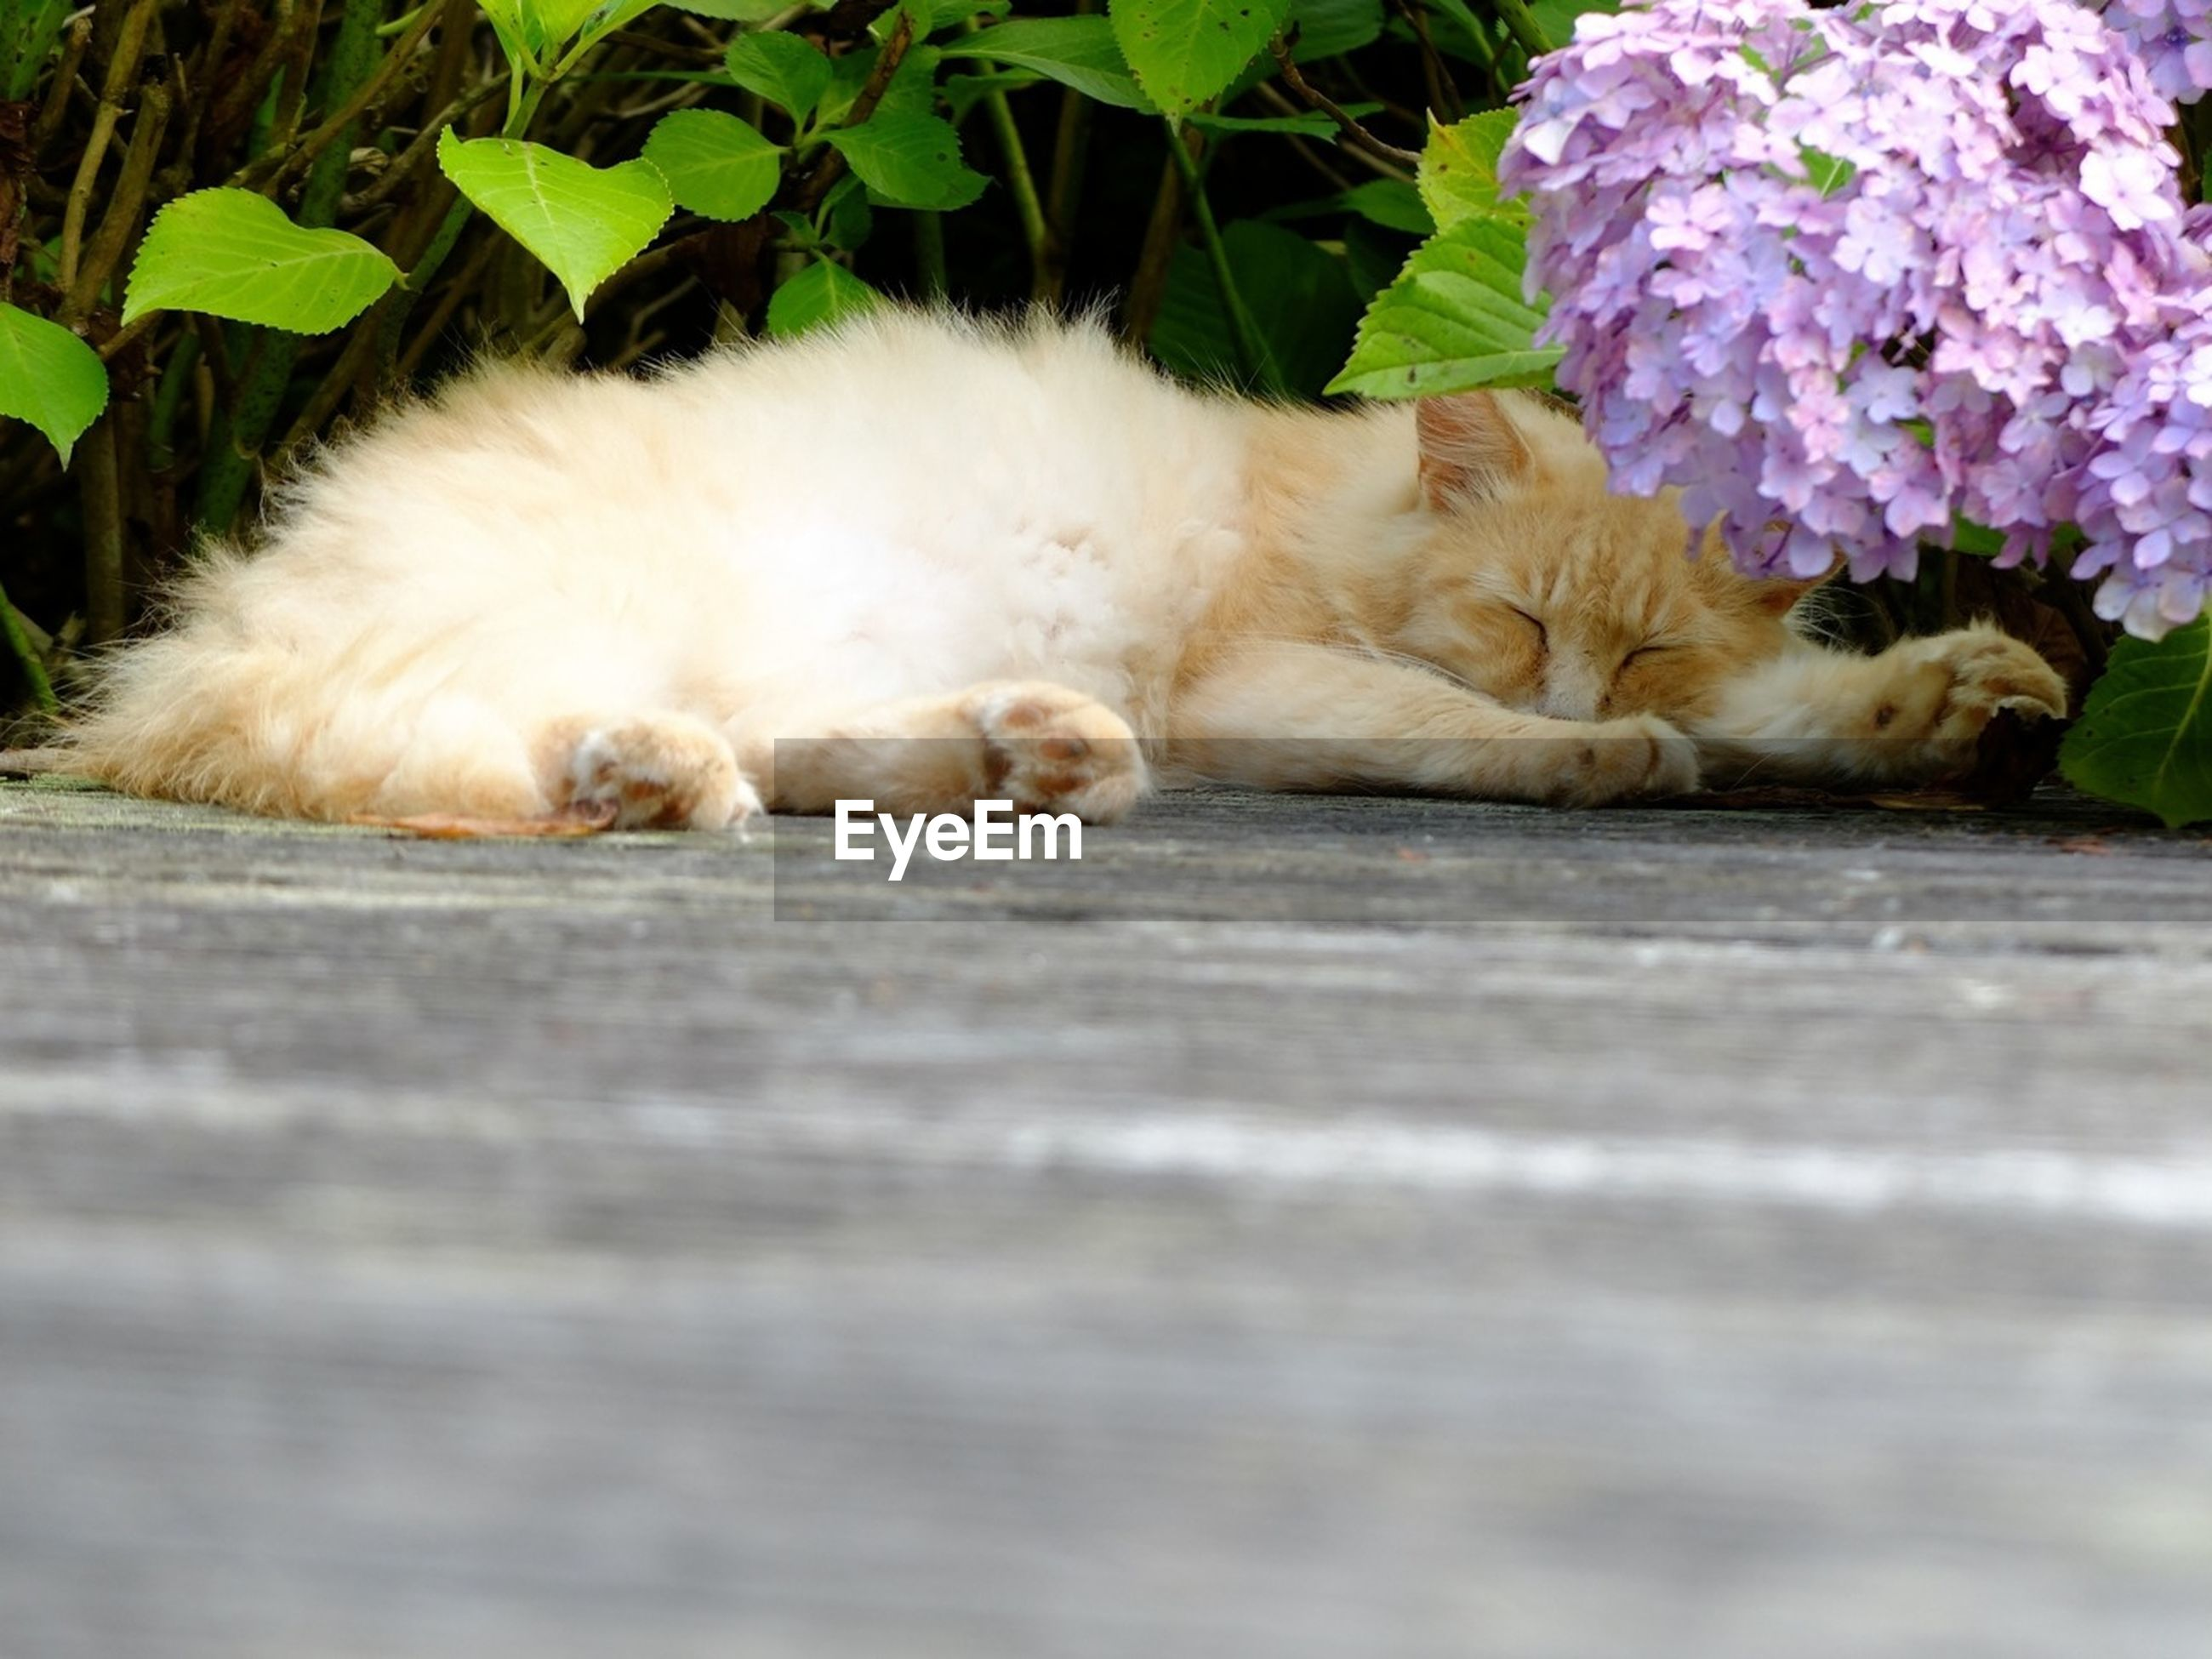 domestic animals, pets, animal themes, mammal, one animal, domestic cat, relaxation, sleeping, cat, resting, lying down, feline, eyes closed, indoors, relaxing, no people, selective focus, zoology, close-up, comfortable